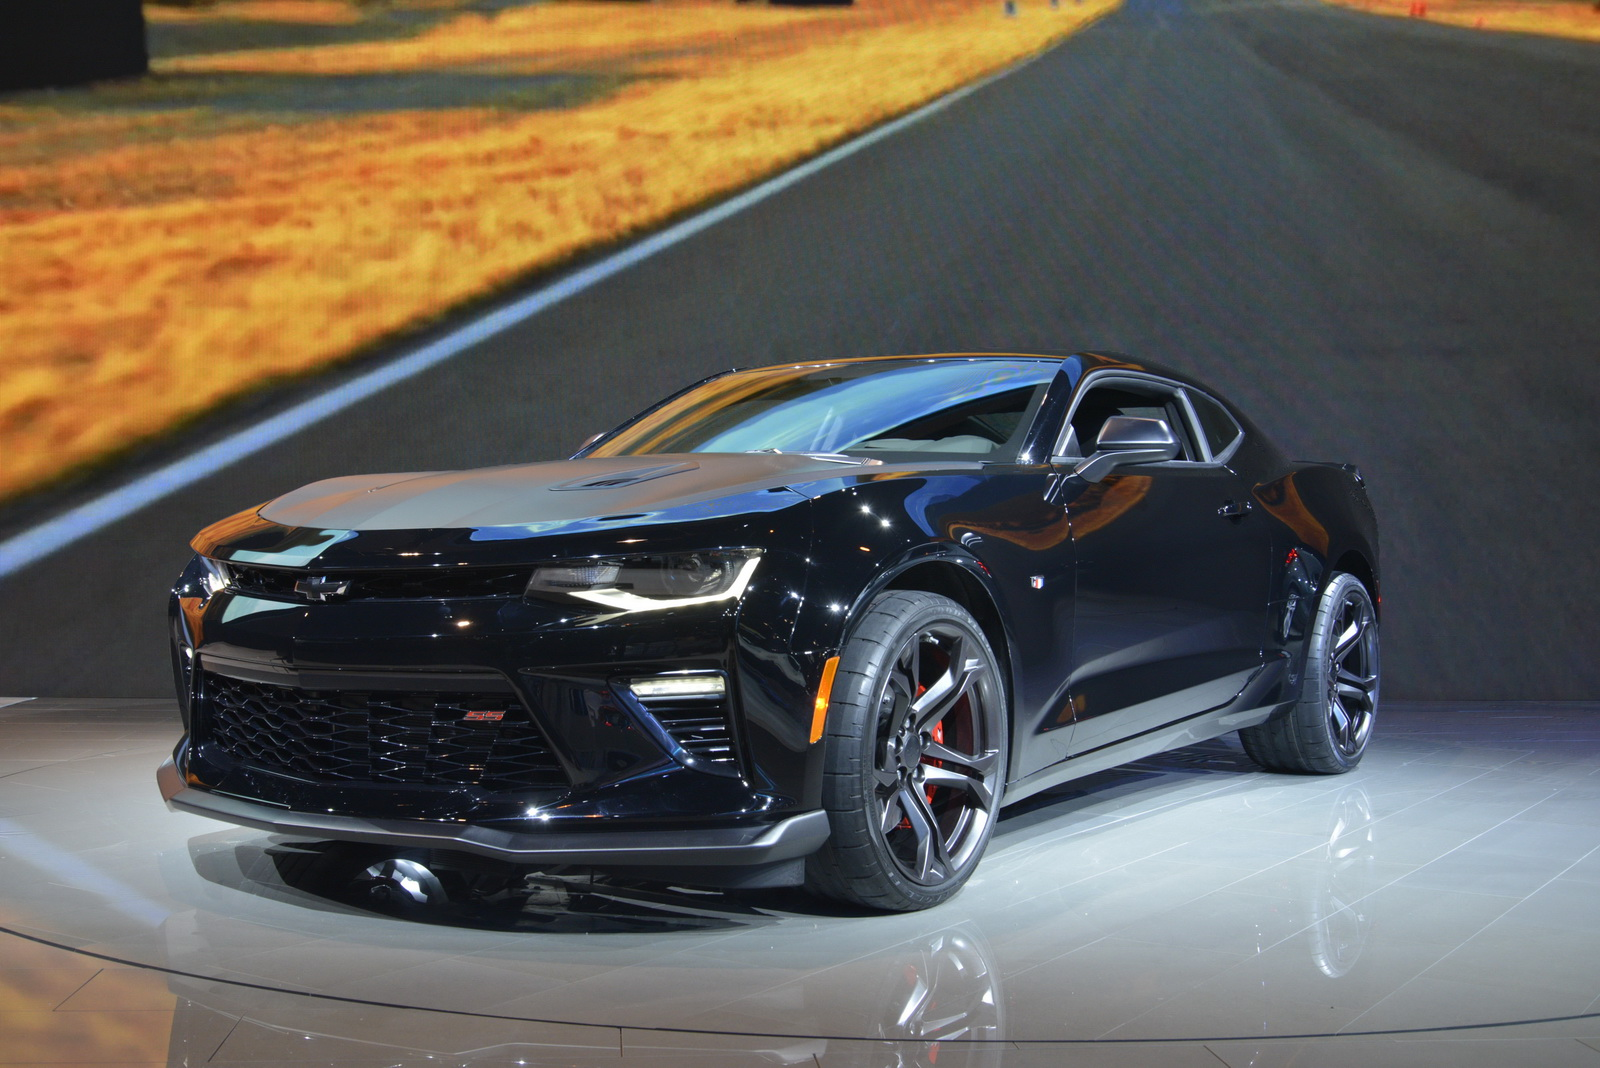 Camaro chevy camaro ss 1le : Chevrolet's Track-Ready 2017 Camaro 1LE Shows Up In Chicago ...